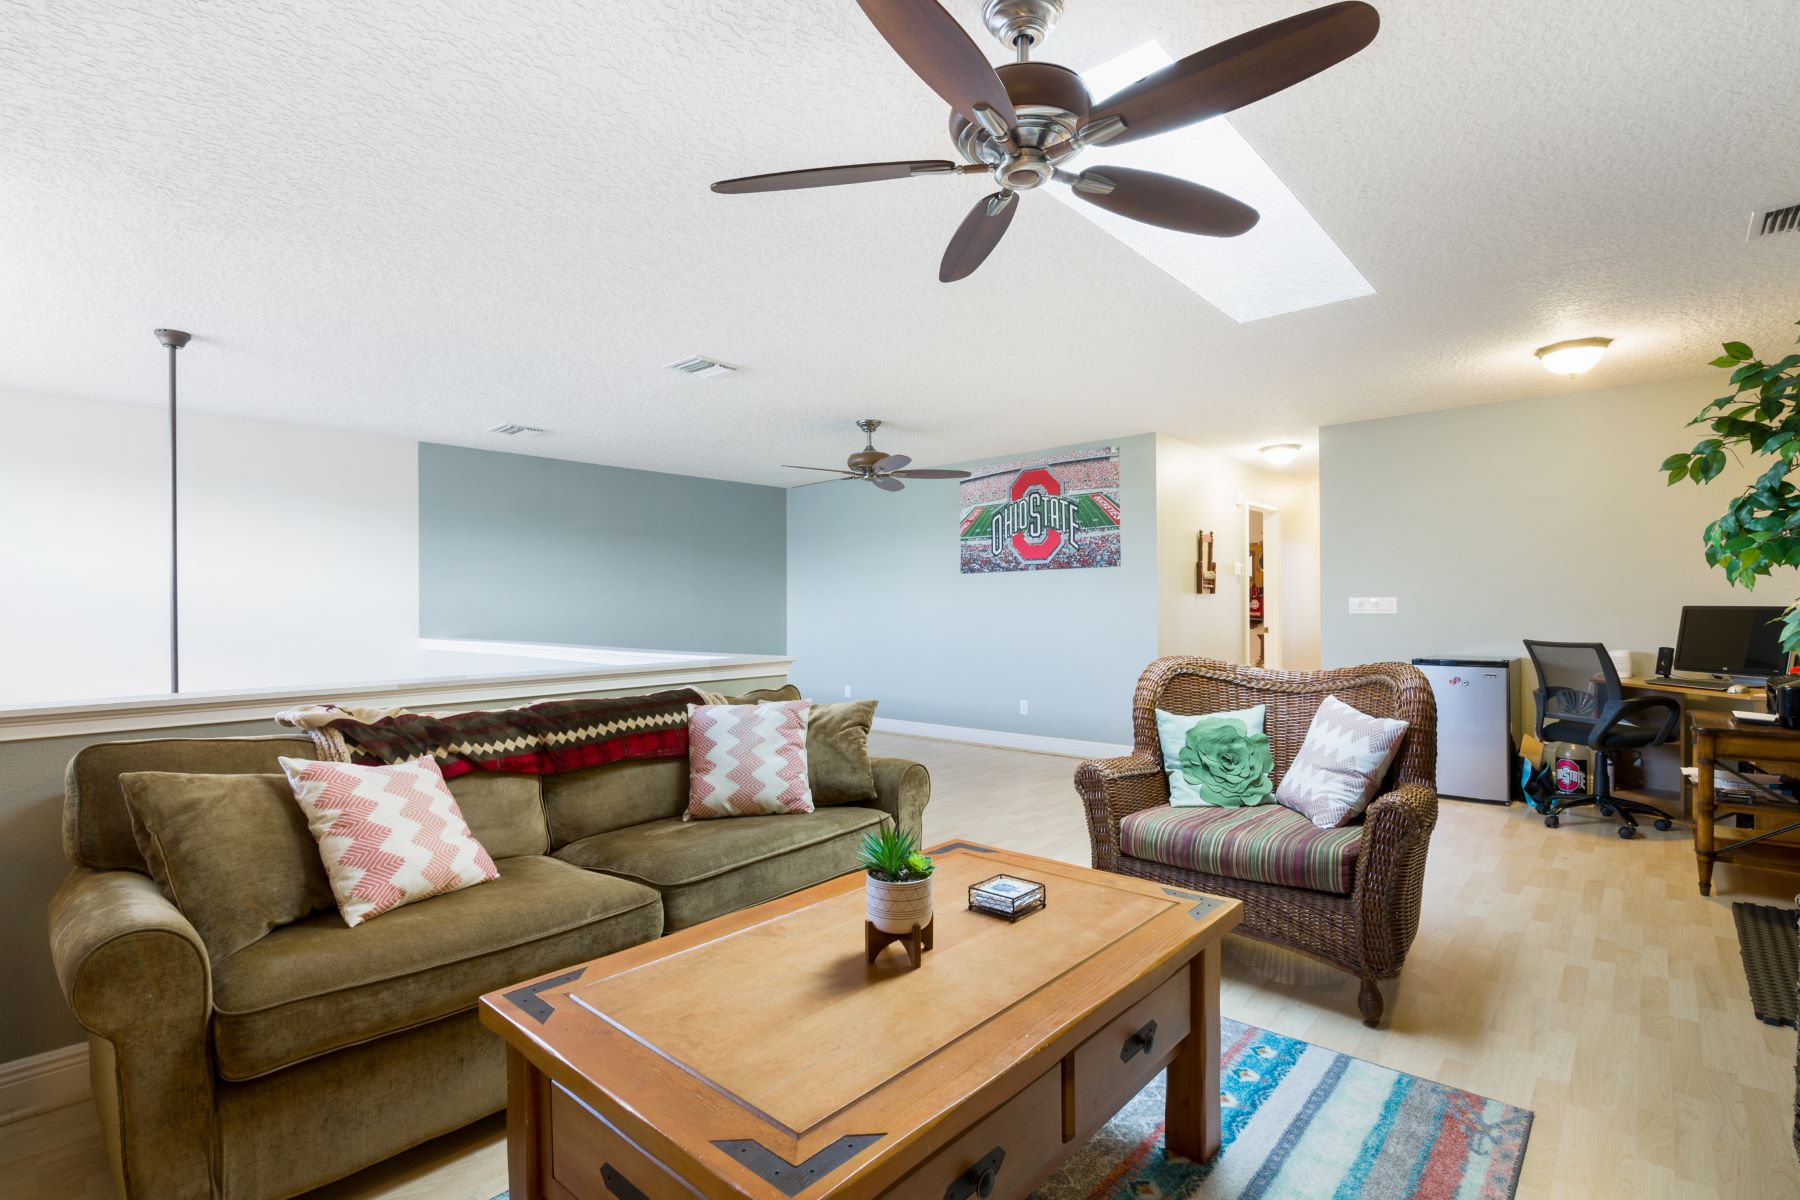 Additional photo for property listing at Coral Way 101 Coral E Way 4 Indialantic, Florida 32903 United States